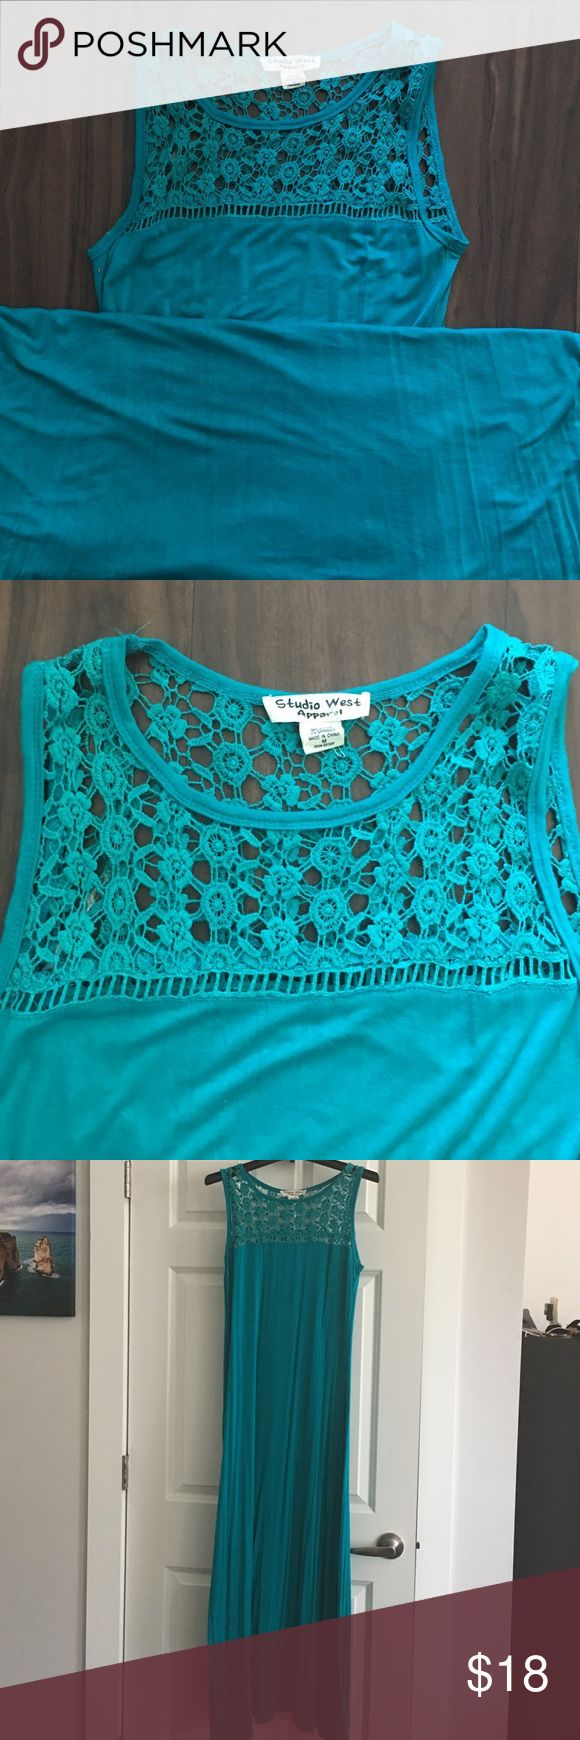 Turquoise maxi dress Beautiful turquoise maxi dress. Lace on the chest and back. can wear for a casual night out and on the beach! Dresses Maxi